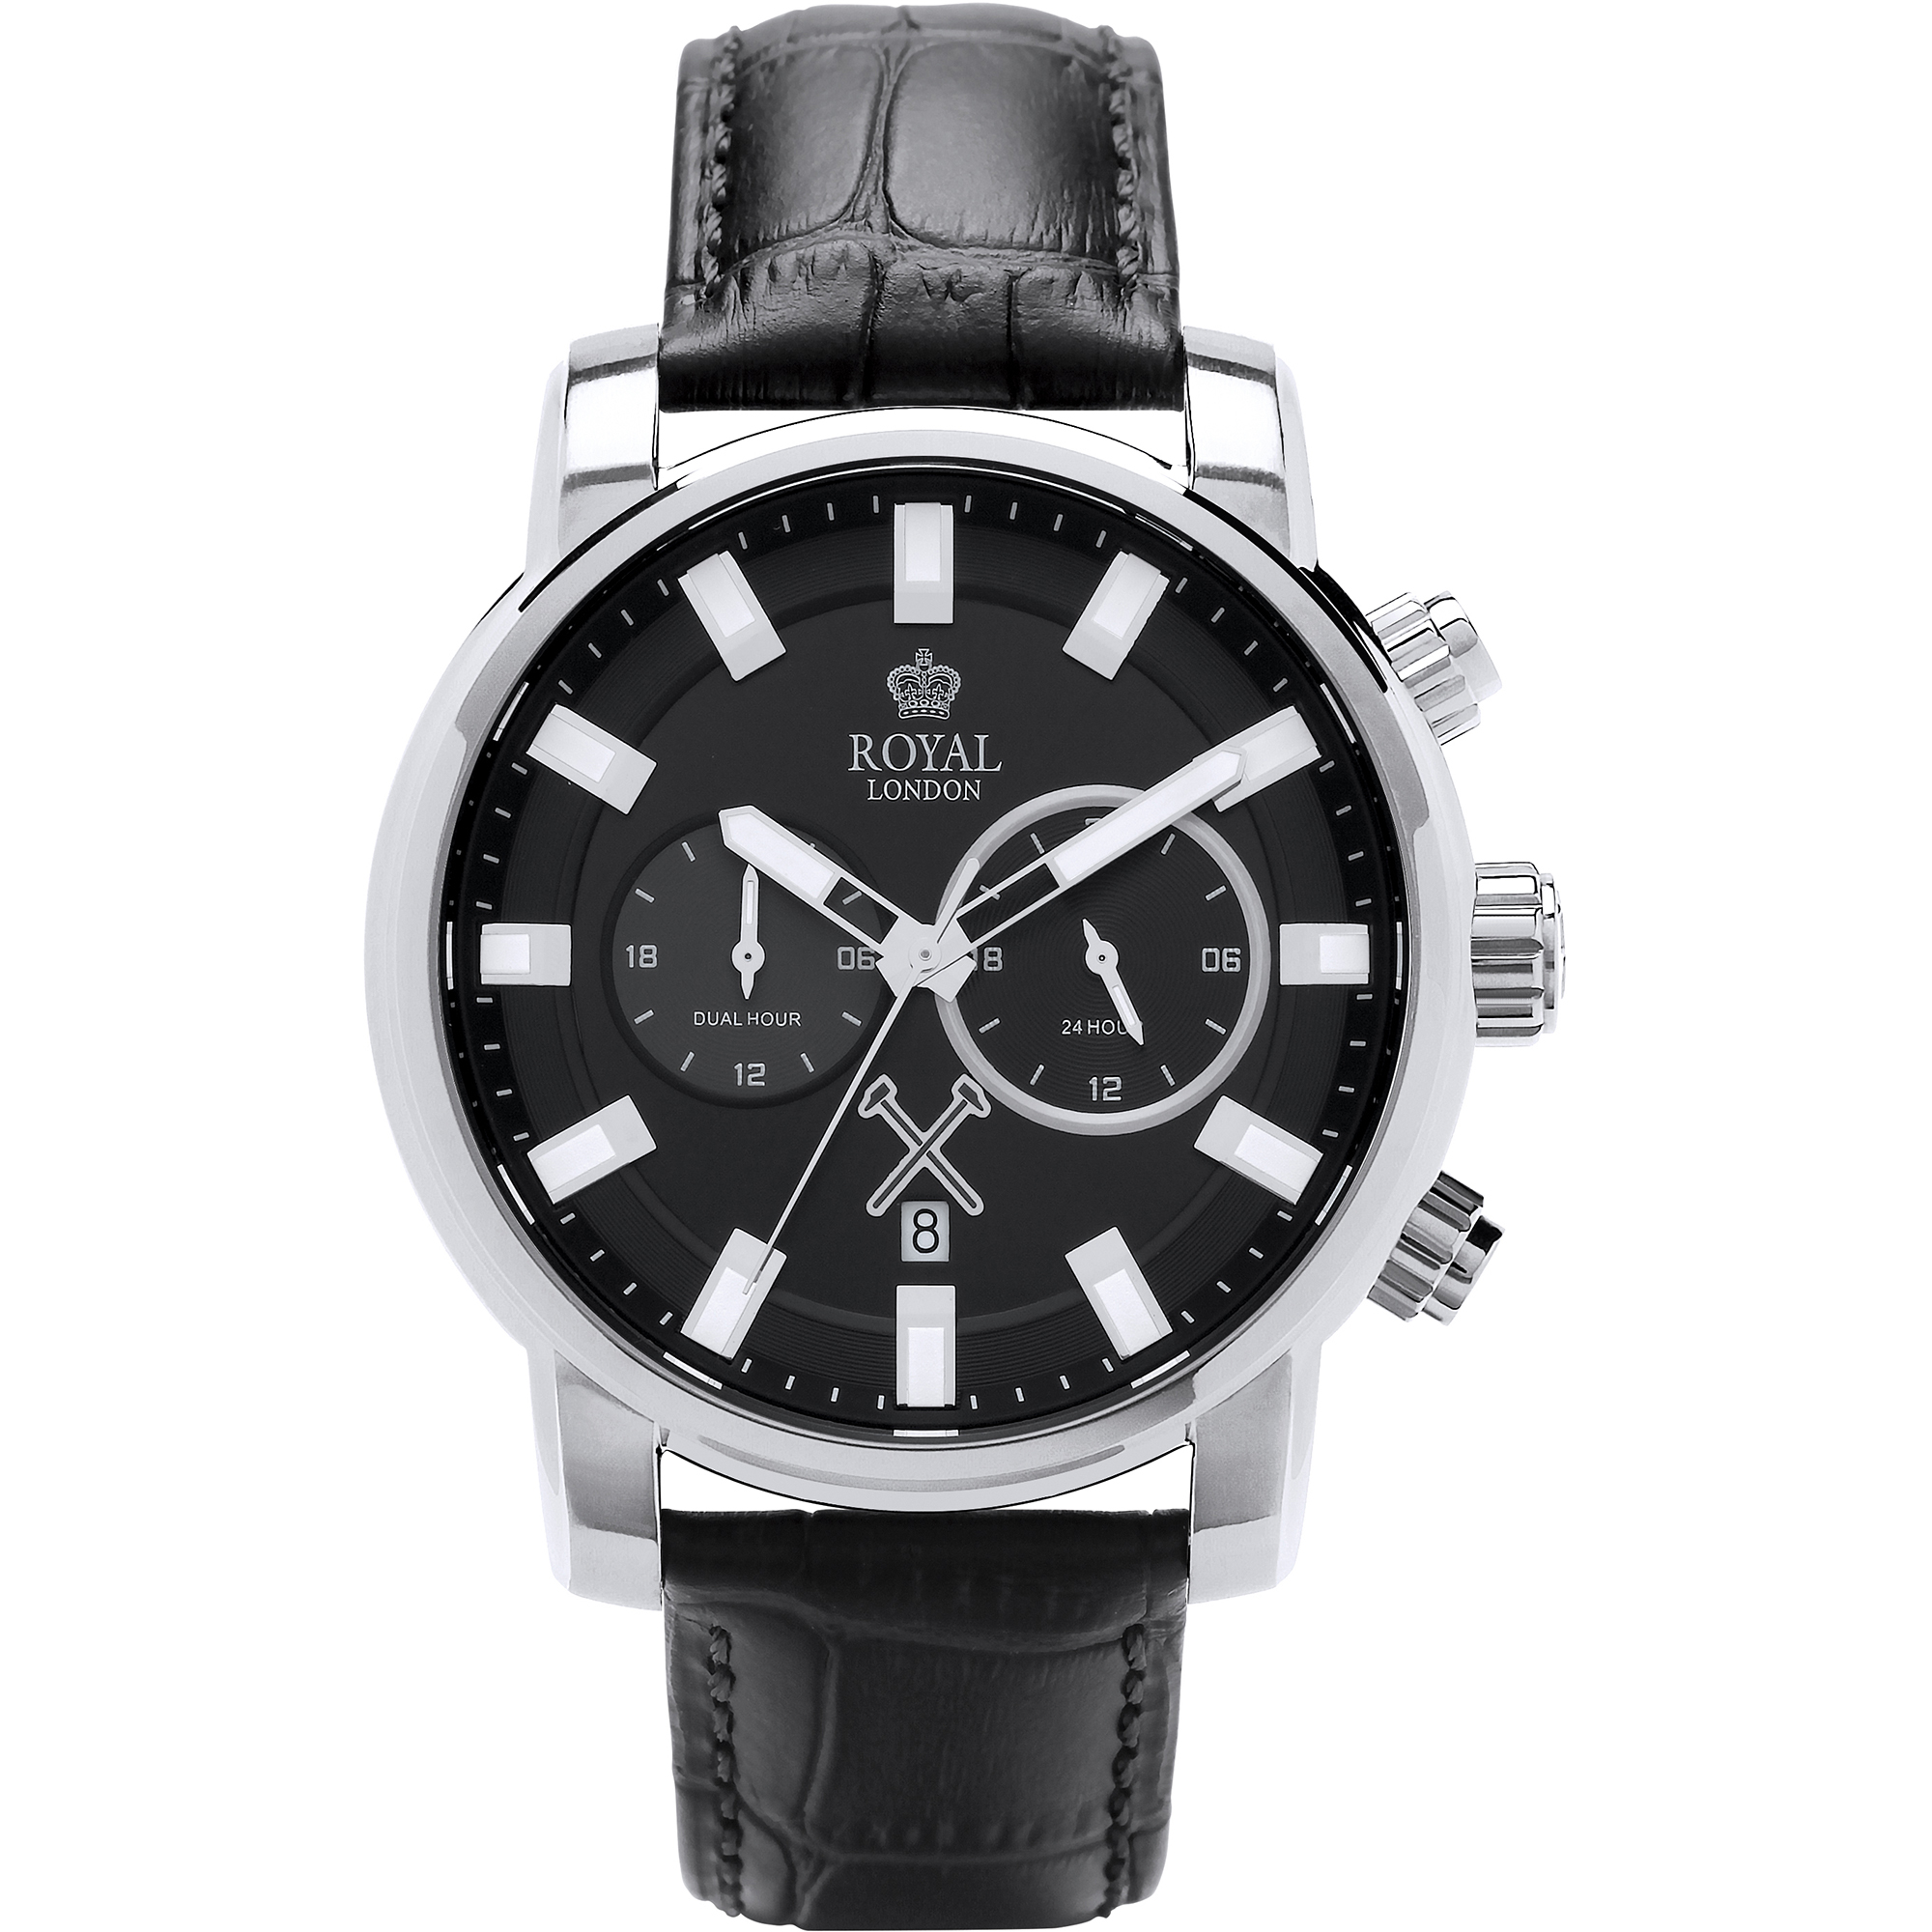 ROYAL LONDON 5 SS MULTI FUNCTION WATCH